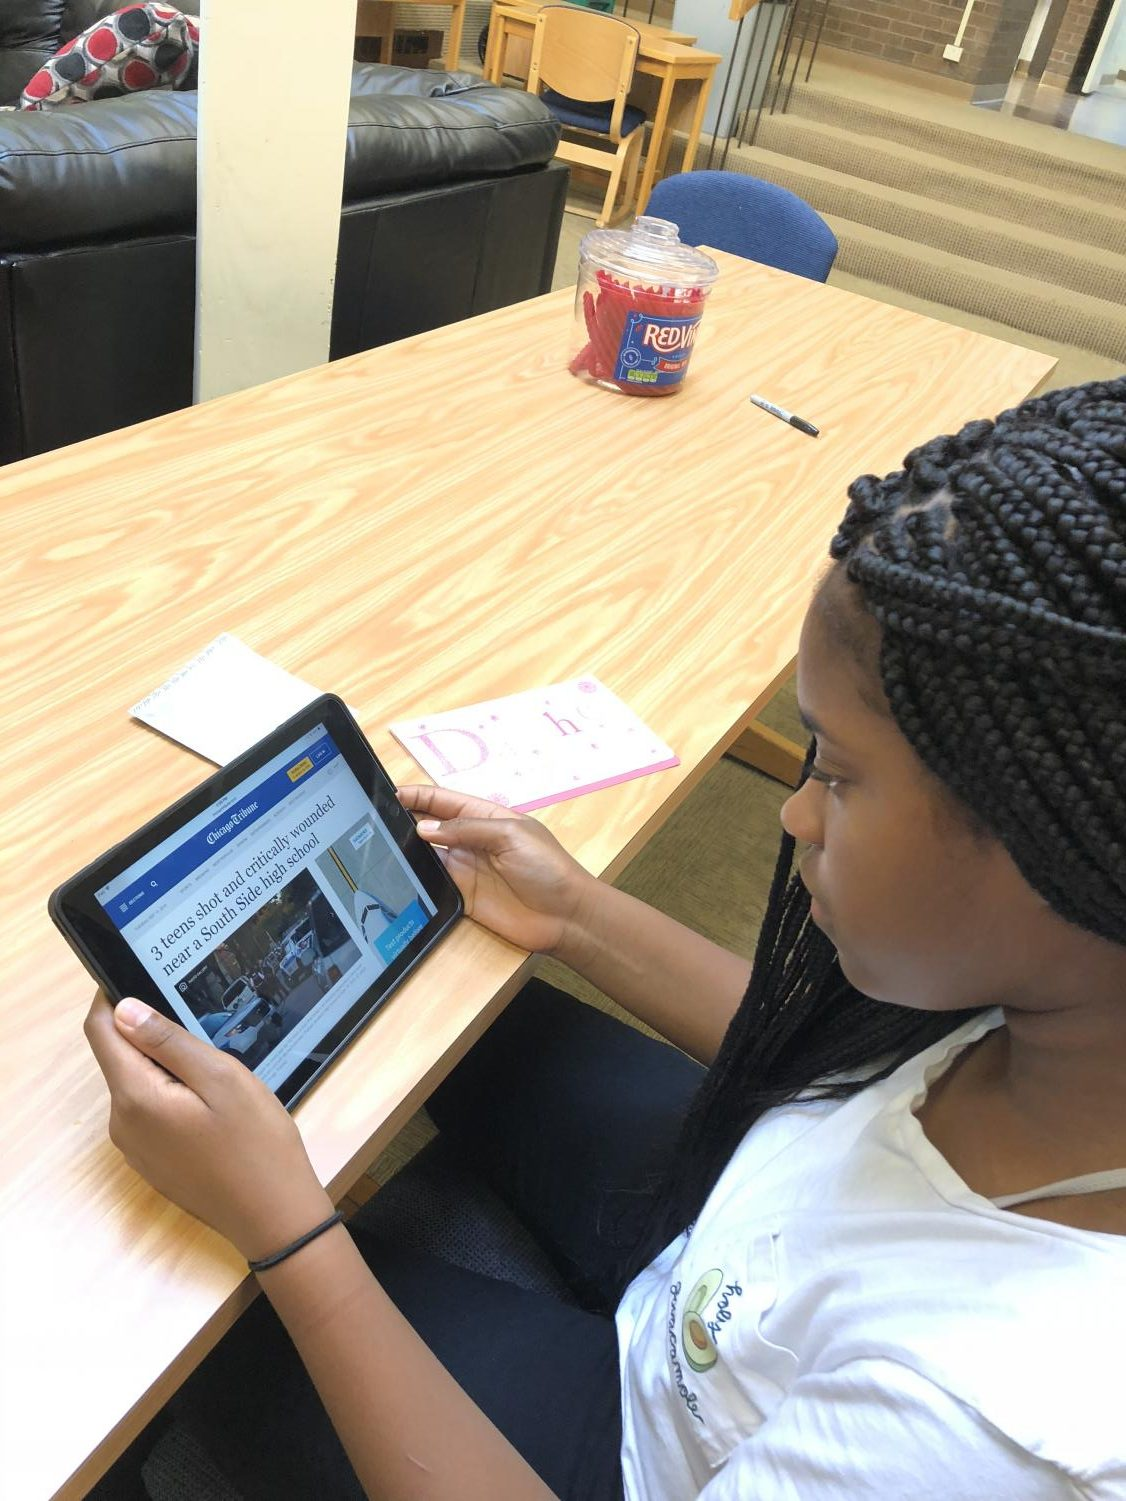 Freshman, Safiya Nicol, is reading a Chicago Tribune article about the shooting of three teens in Chicago's South Side.